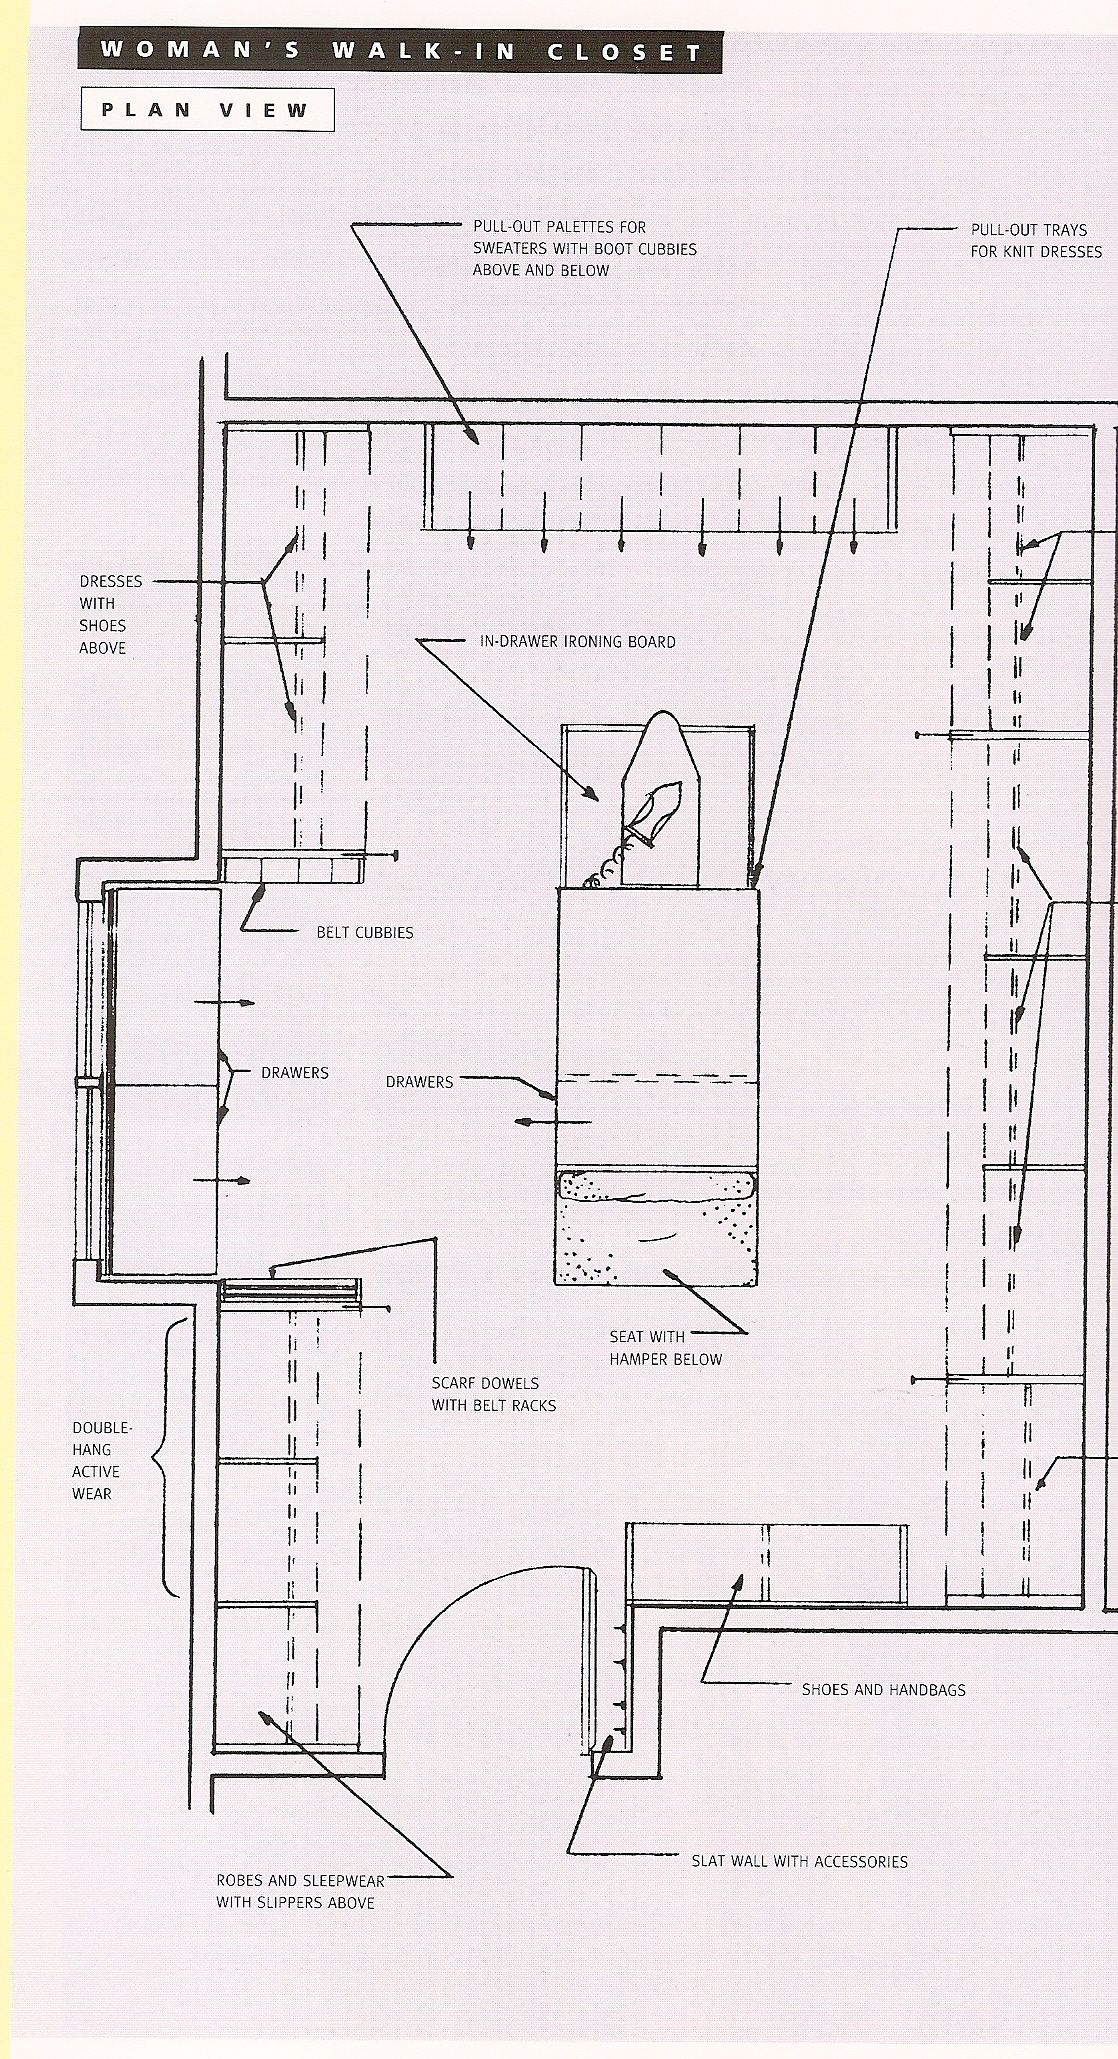 walk in closet floor plans perfect woman s closet floor plan walk in closet inspiration closet designs walk in closet 9439